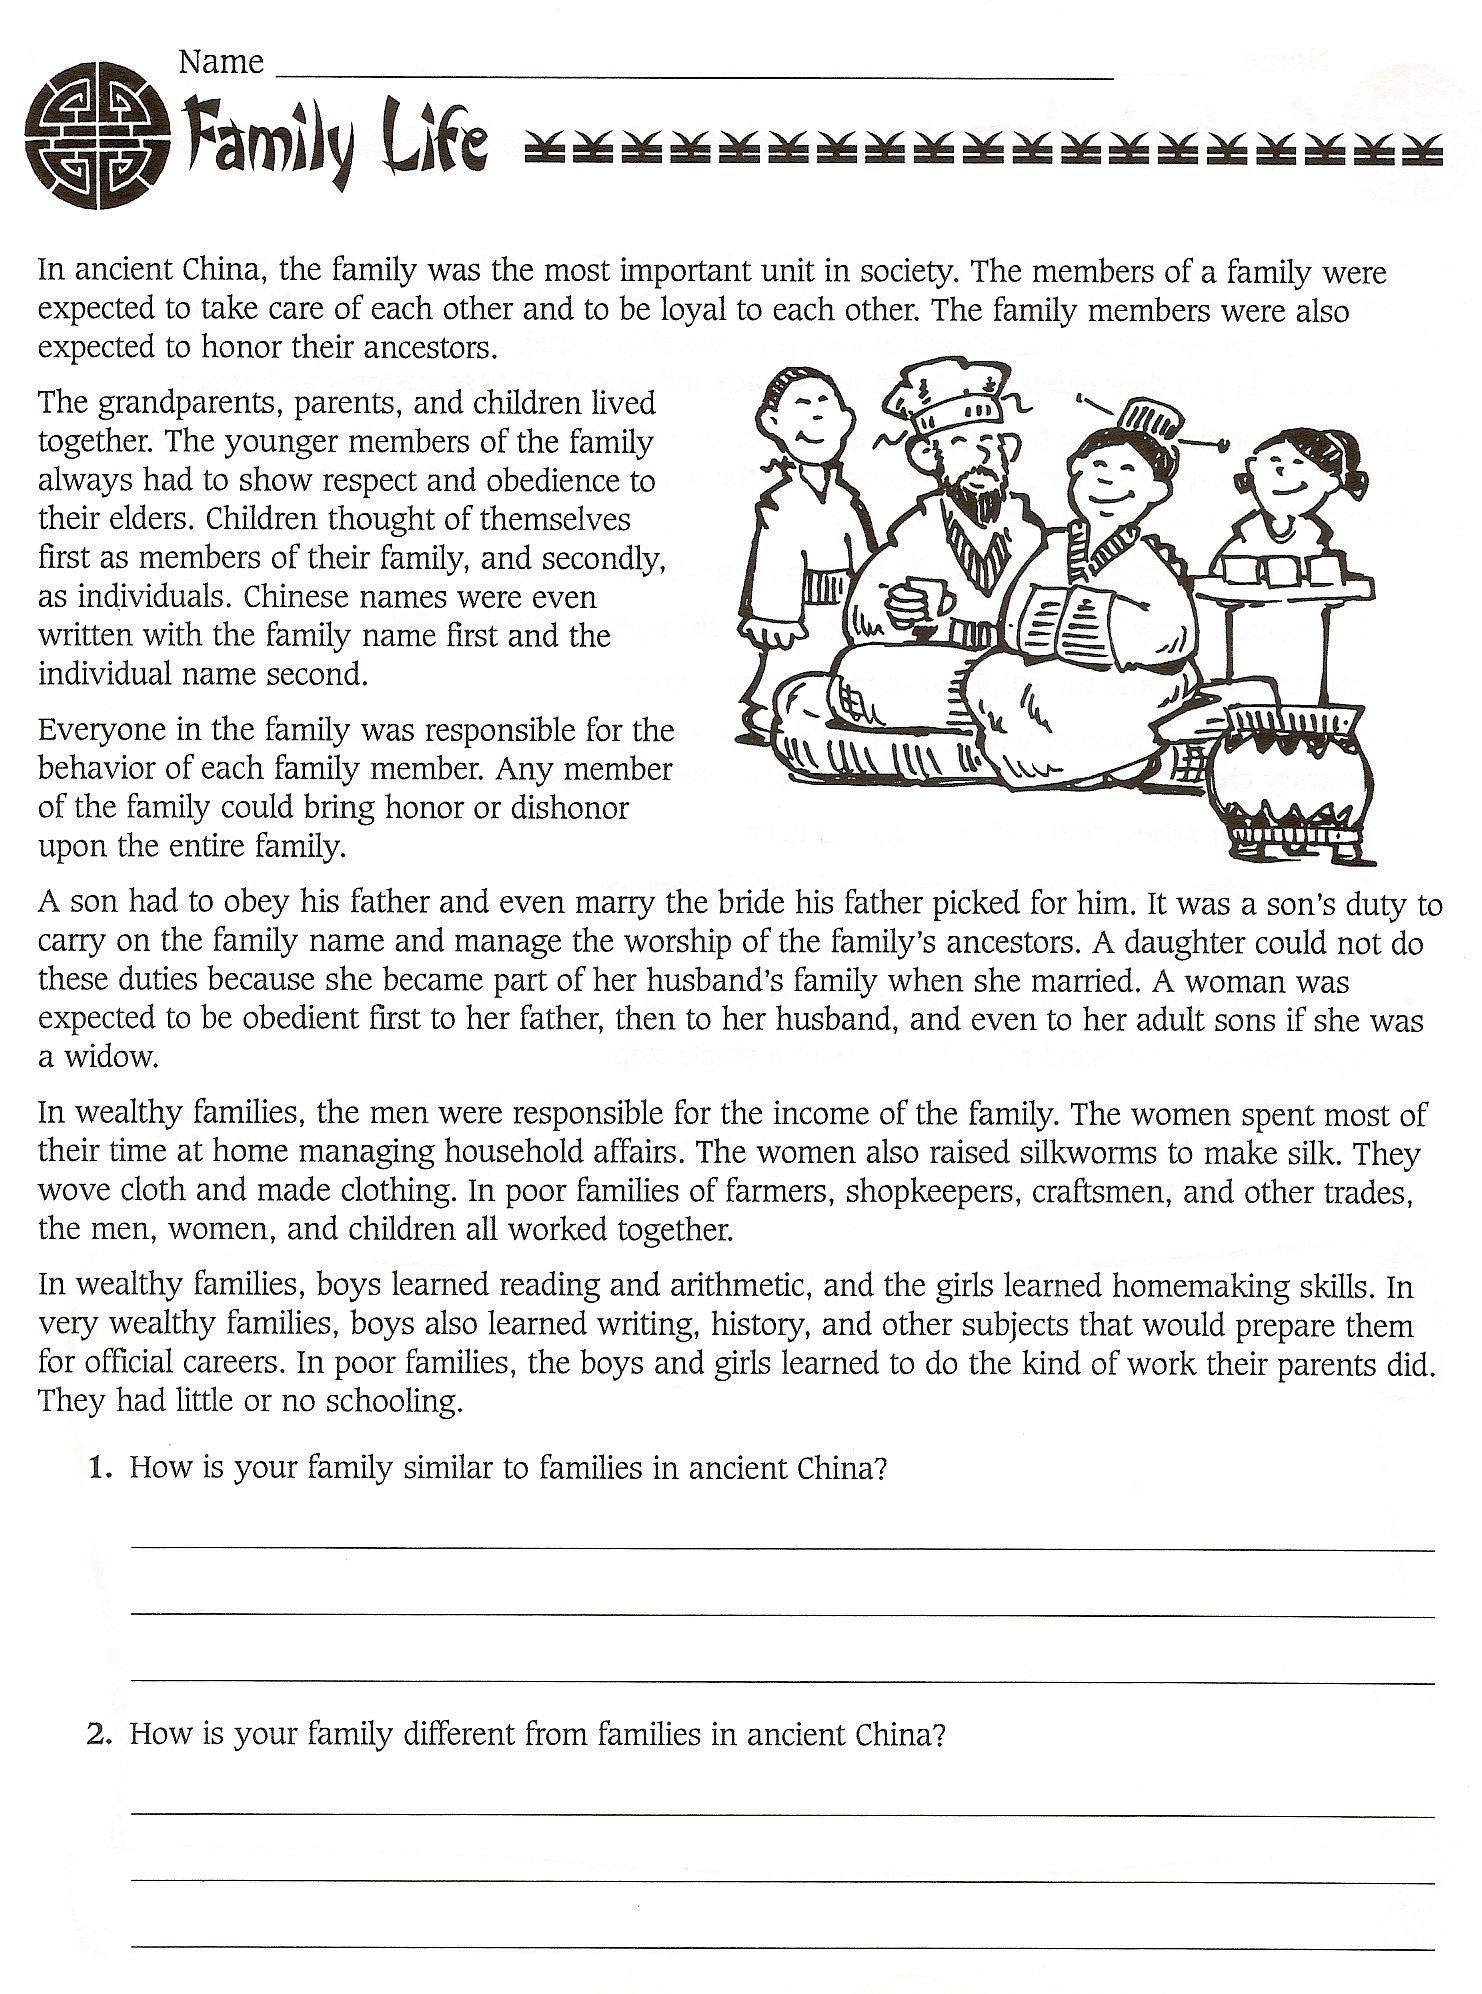 6Th Grade Social Studies Ancient China Worksheets - Free | Ancient China Printable Worksheets